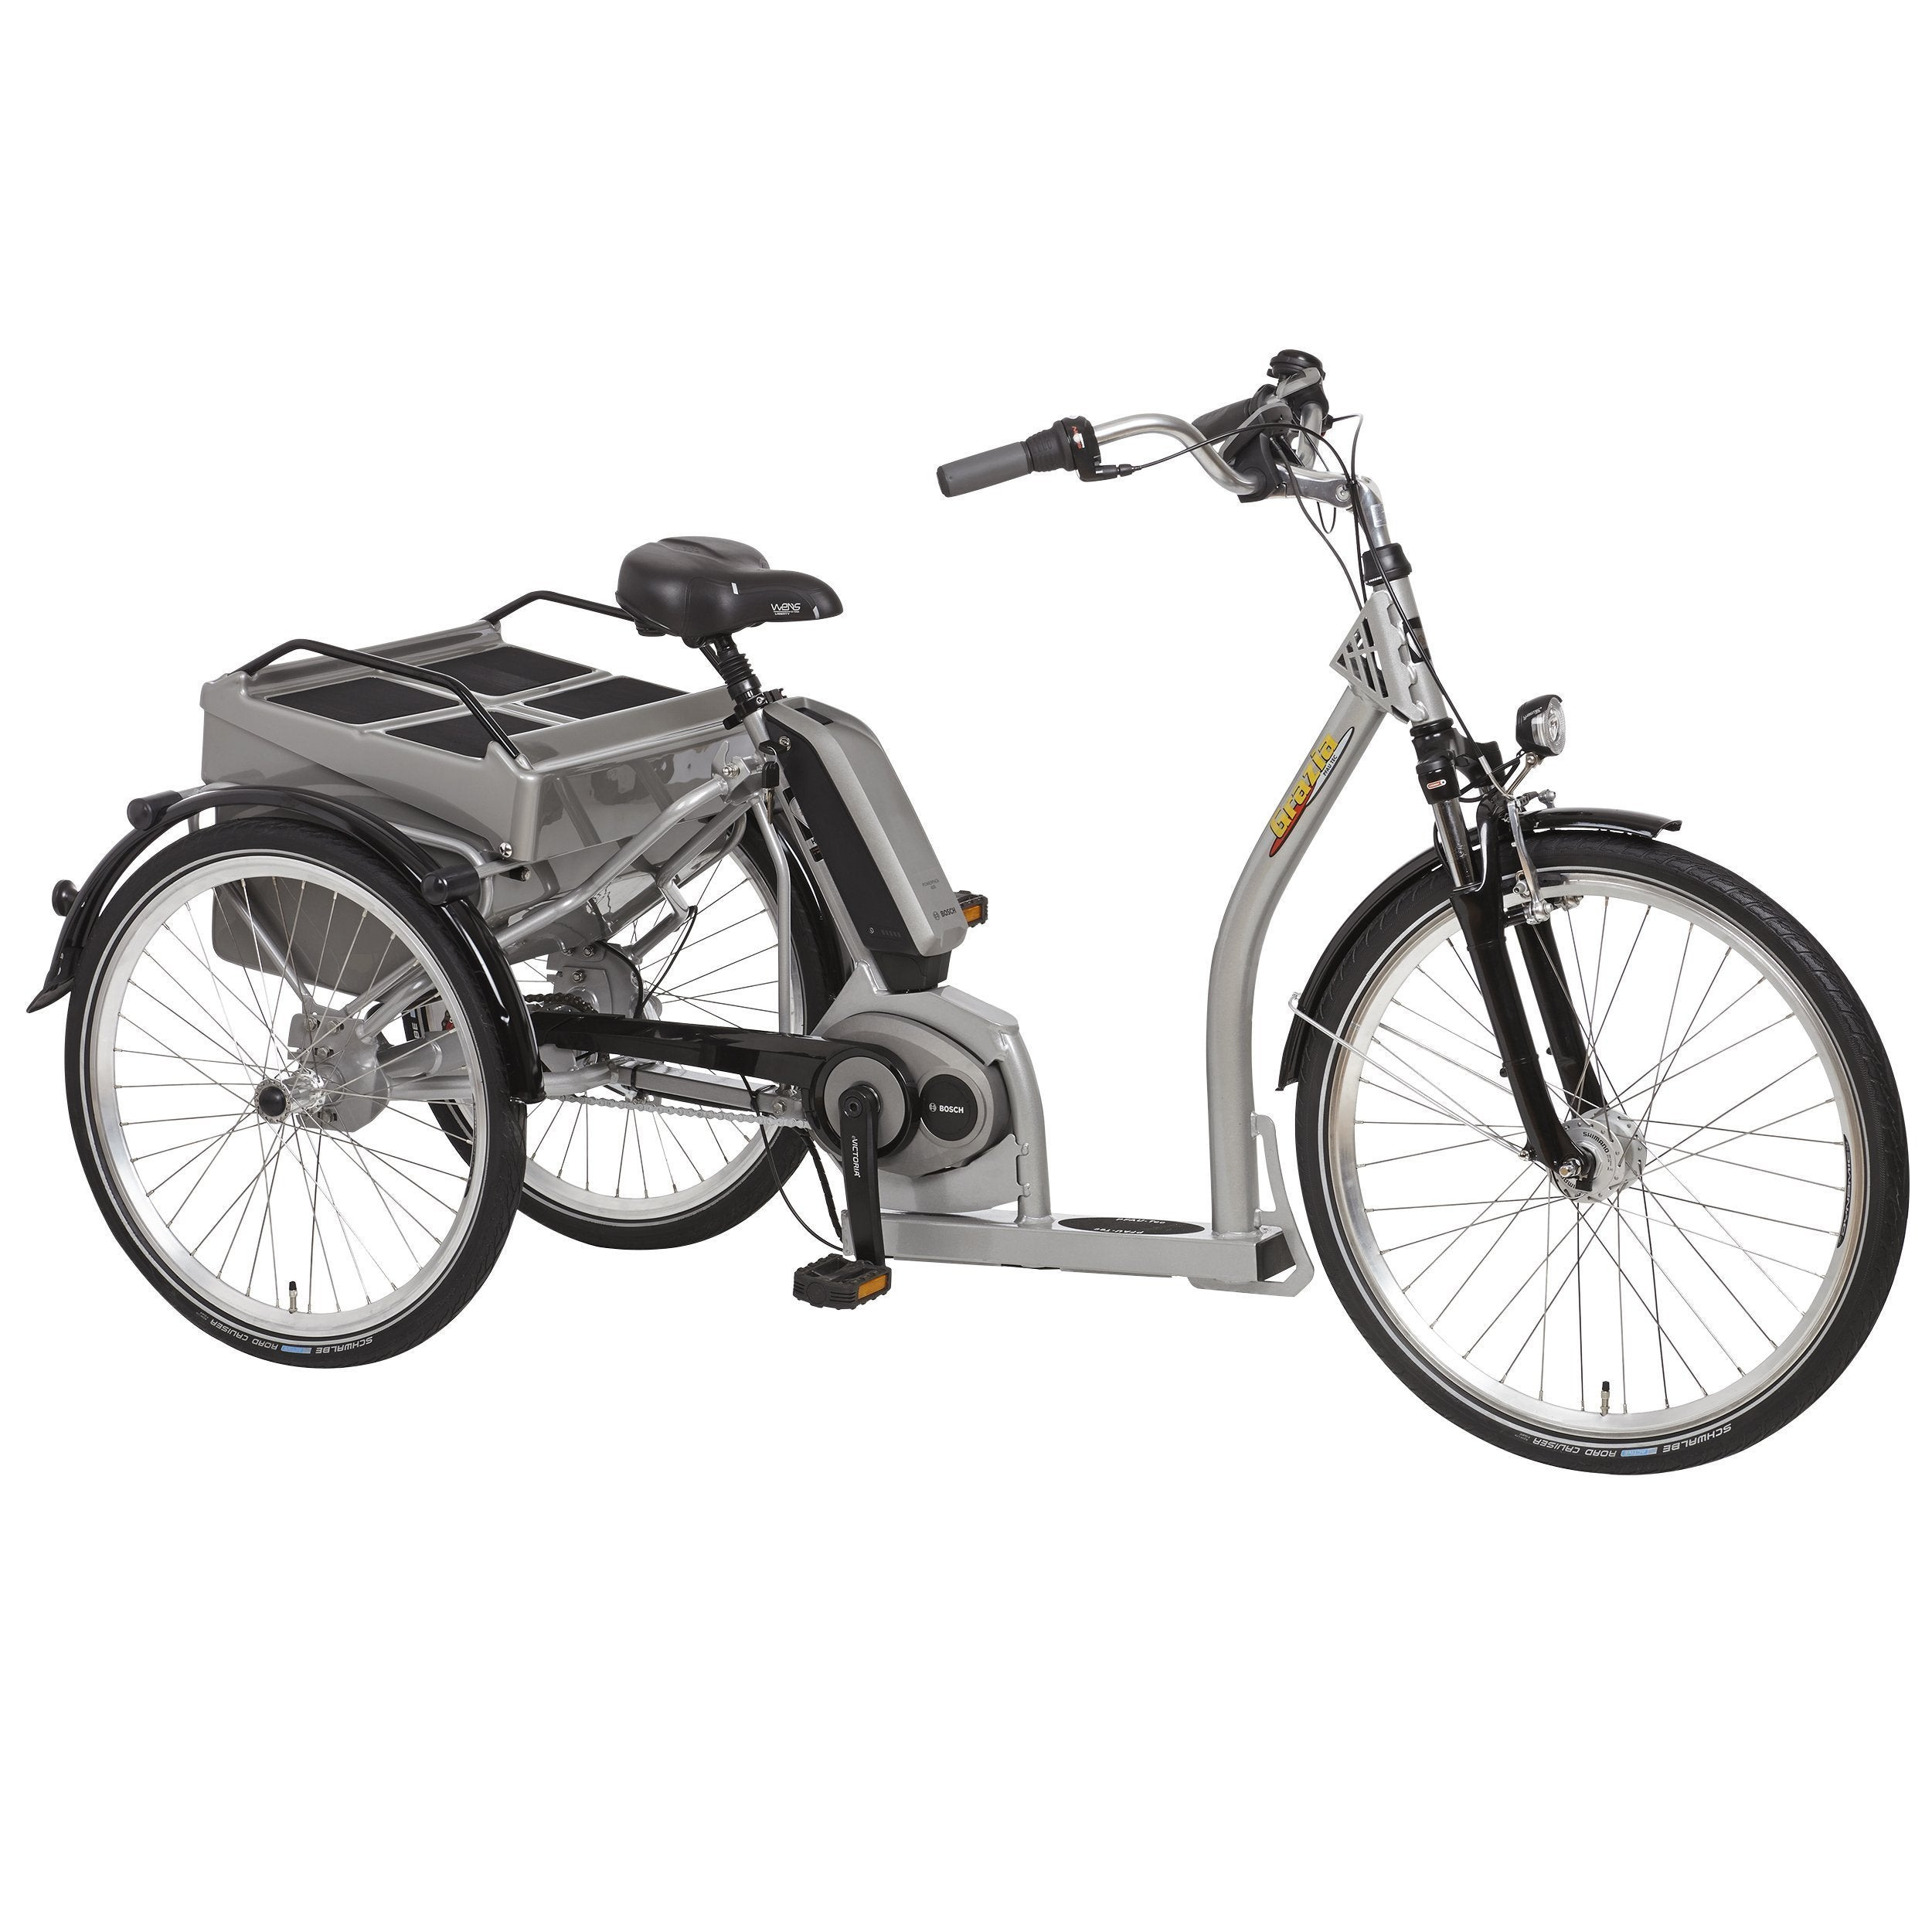 PFIFF Grazia Silver 26/24 Inch Step-Through Bosch Electric Tricycle - Electric Trike Ridetique.com